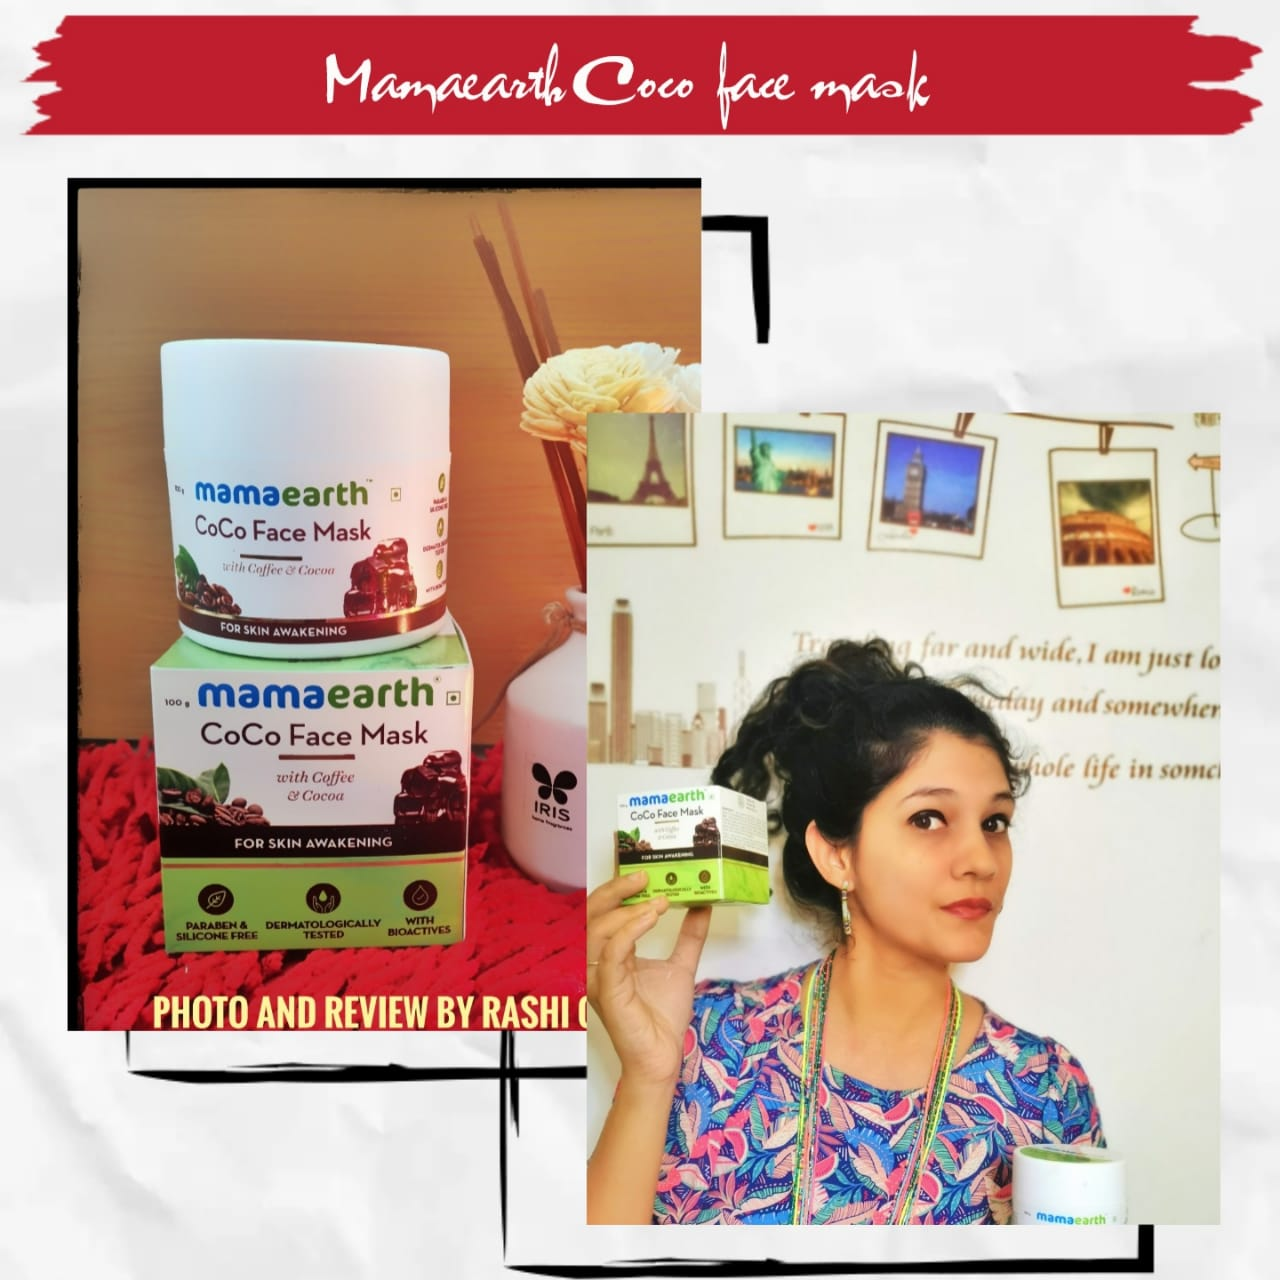 Mamaearth Coco Face Mask With Coffee & Cocoa-Love the Product, fully recommended-By rashi.choudhary@live.com-1